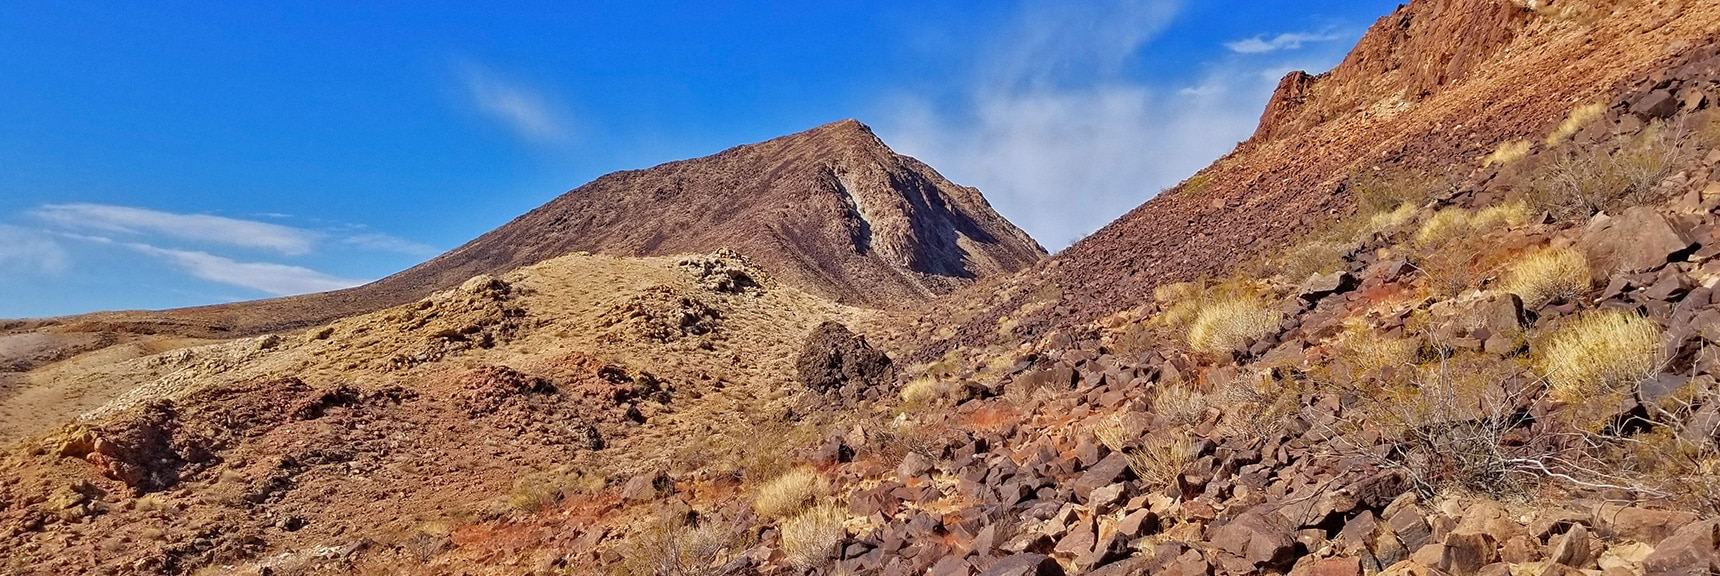 Skirting the East Side of a Ridge Just North of Lava Butte | Lava Butte | Lake Mead National Recreation Area, Nevada